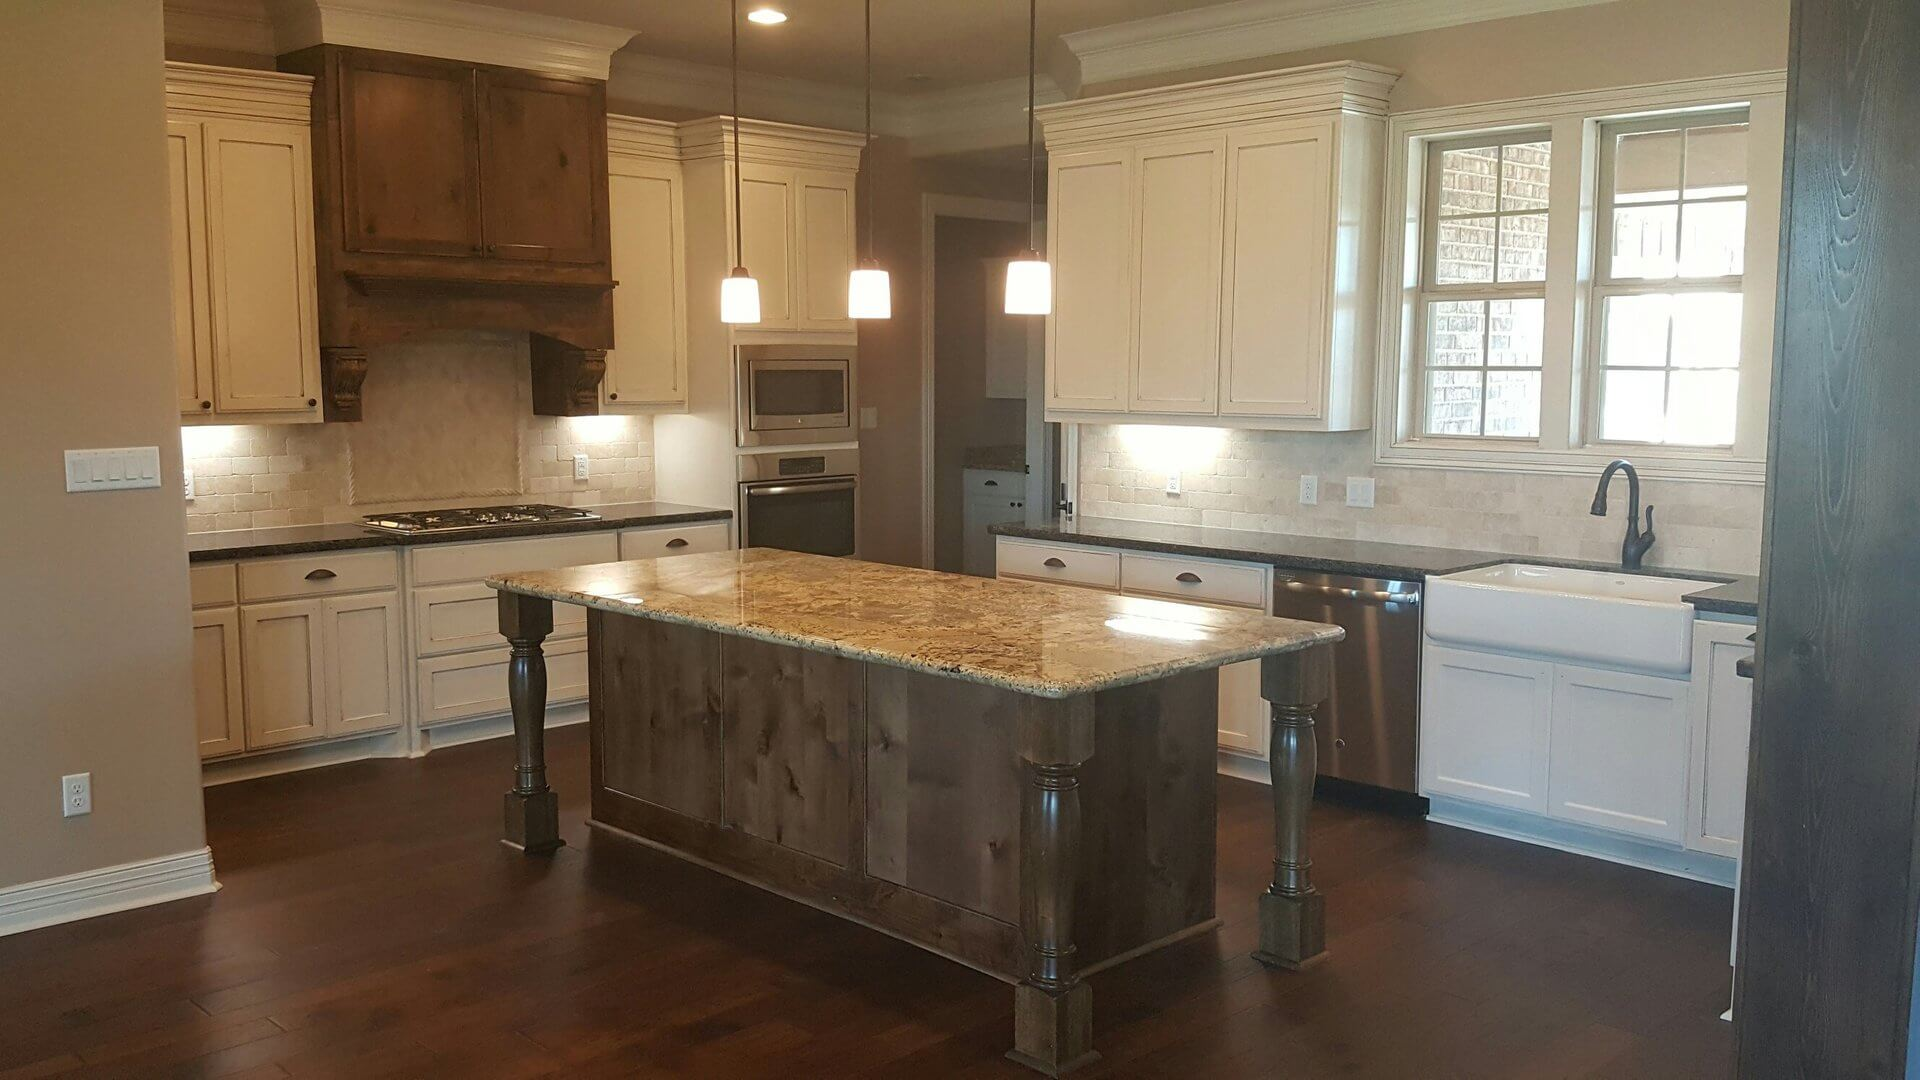 New Home Builder, College Station, TX